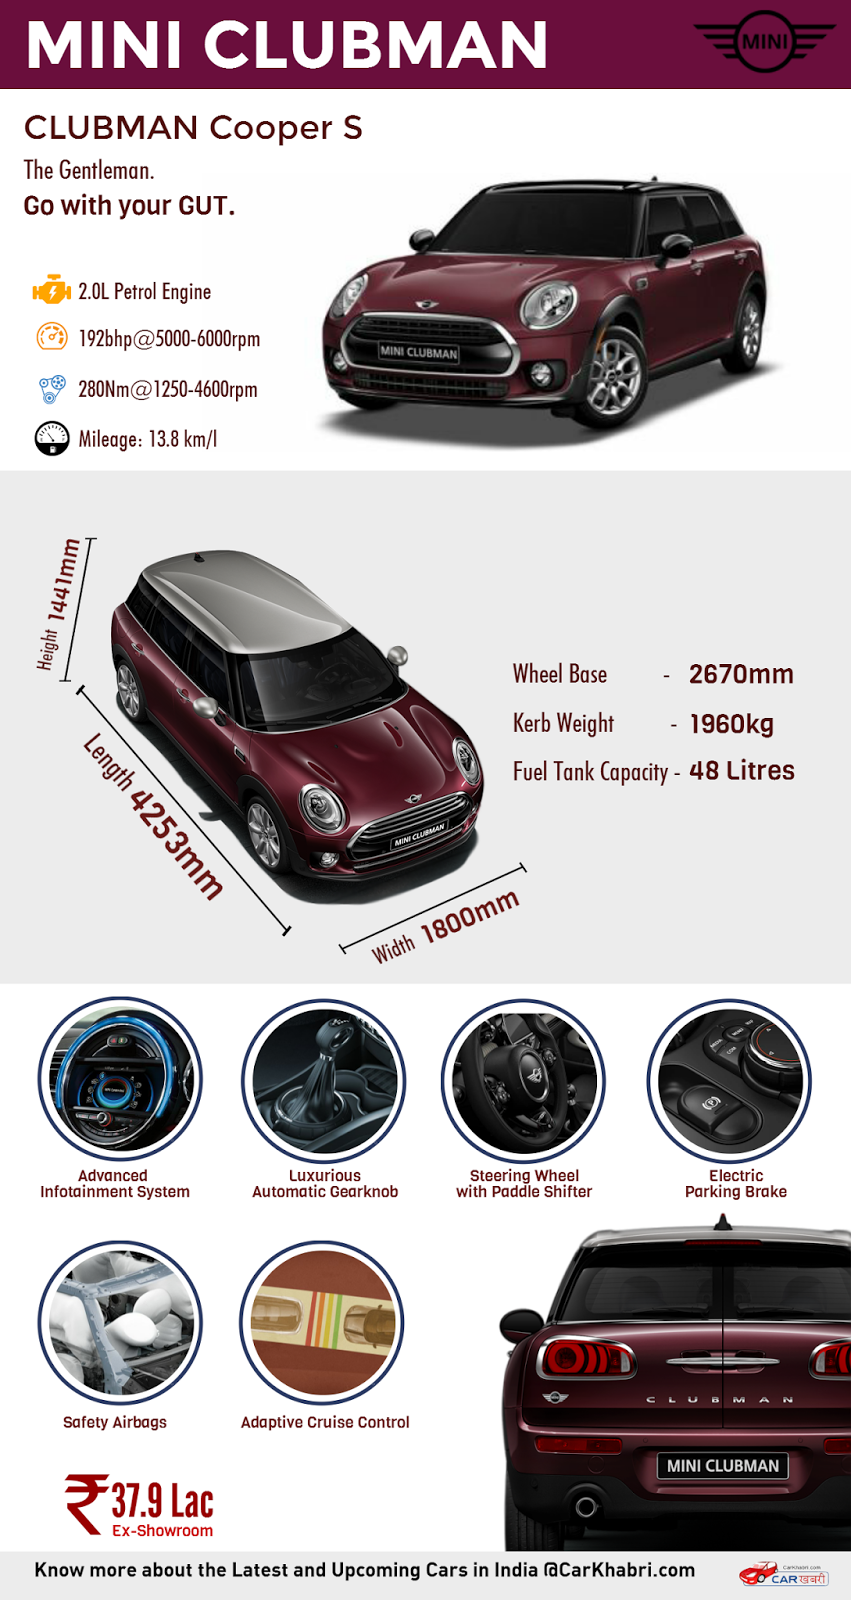 Mini Clubman Infographic